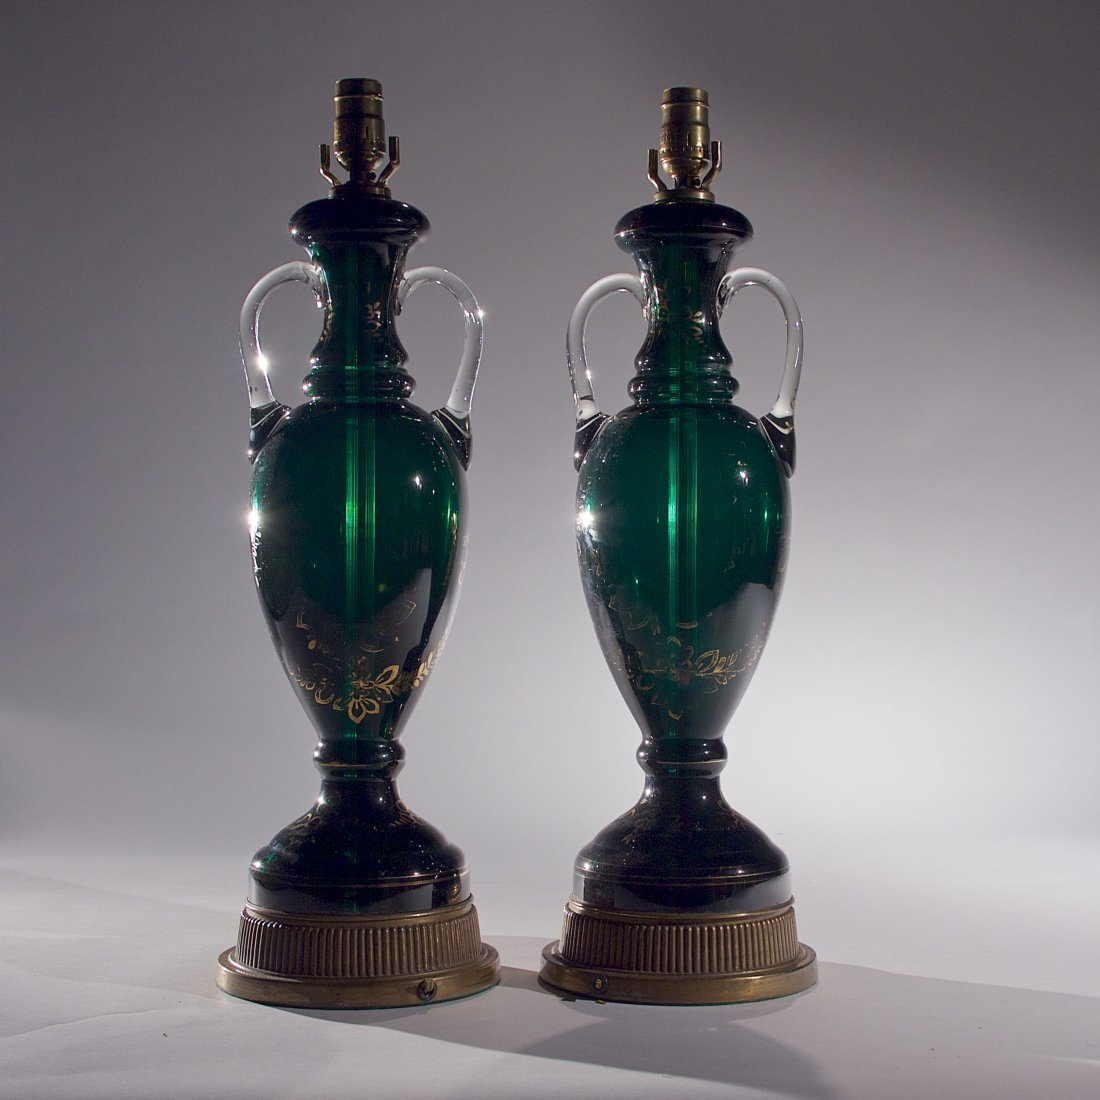 Pair of Venetian Lamps